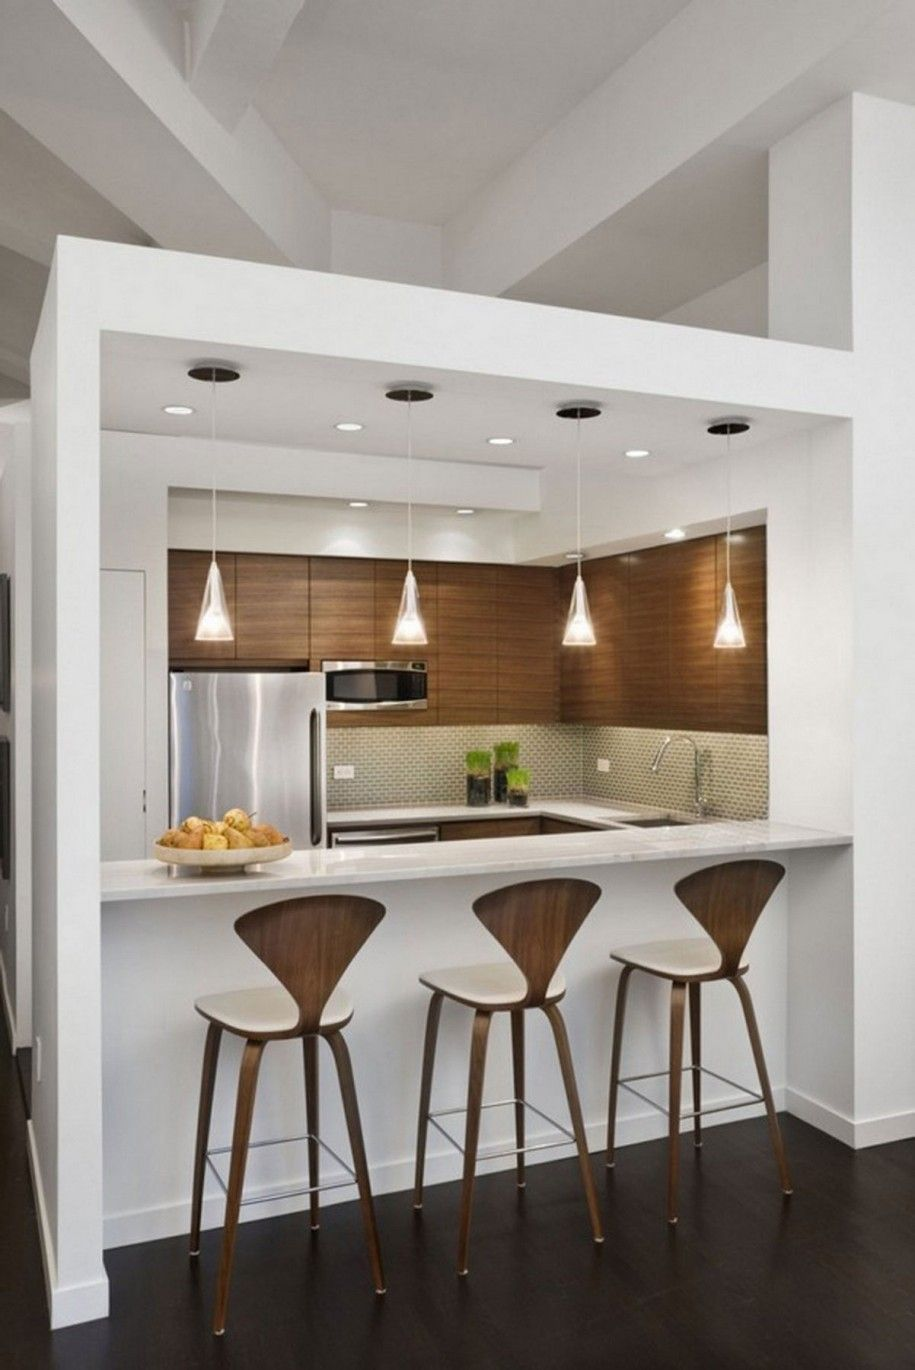 Modern Bar Designs Home Design Image Modern Jpg 915 1370 Kitchen Bar Design Kitchen Remodel Small Kitchen Design Small